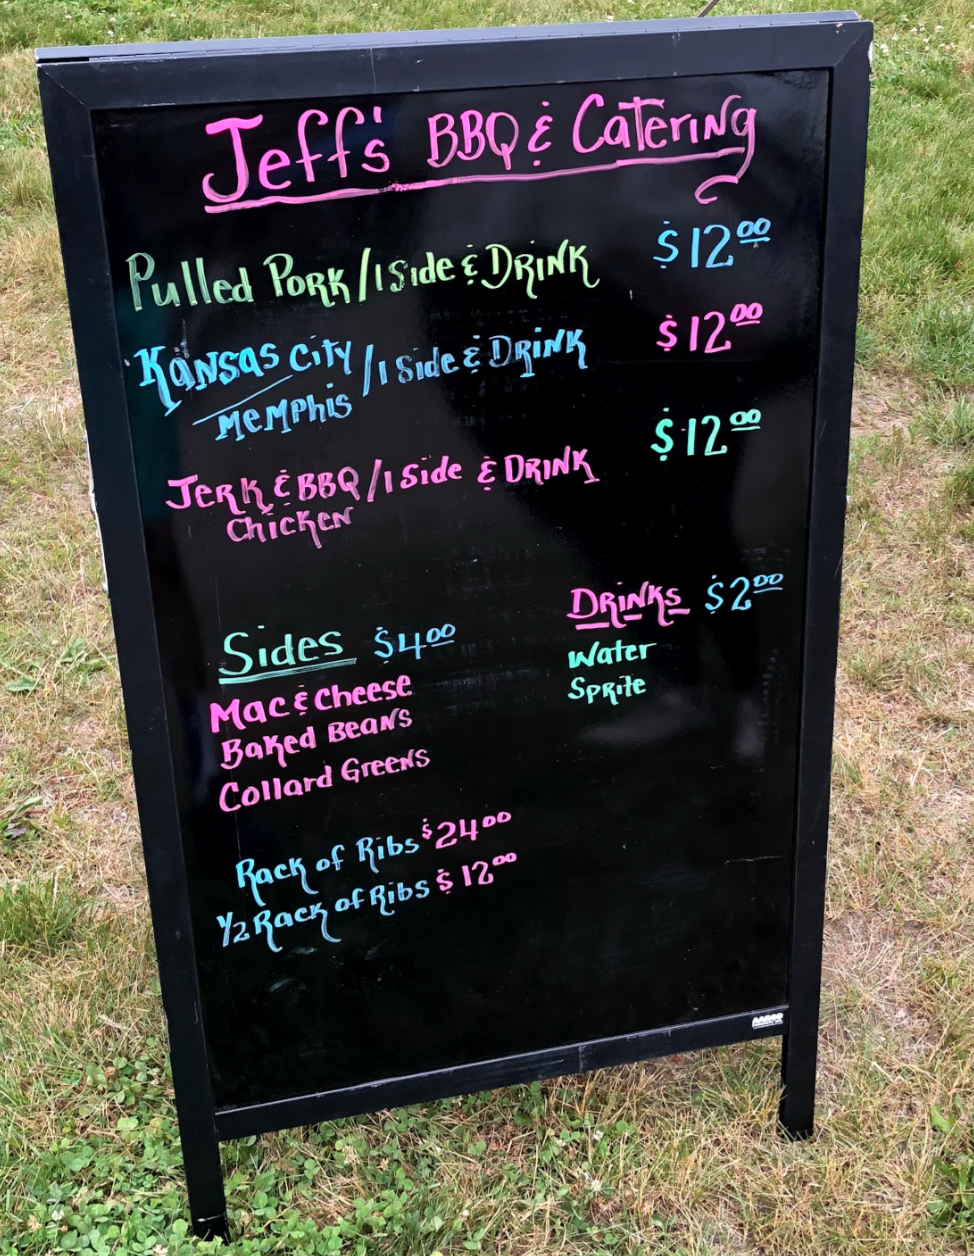 Jeffs BBQ menu